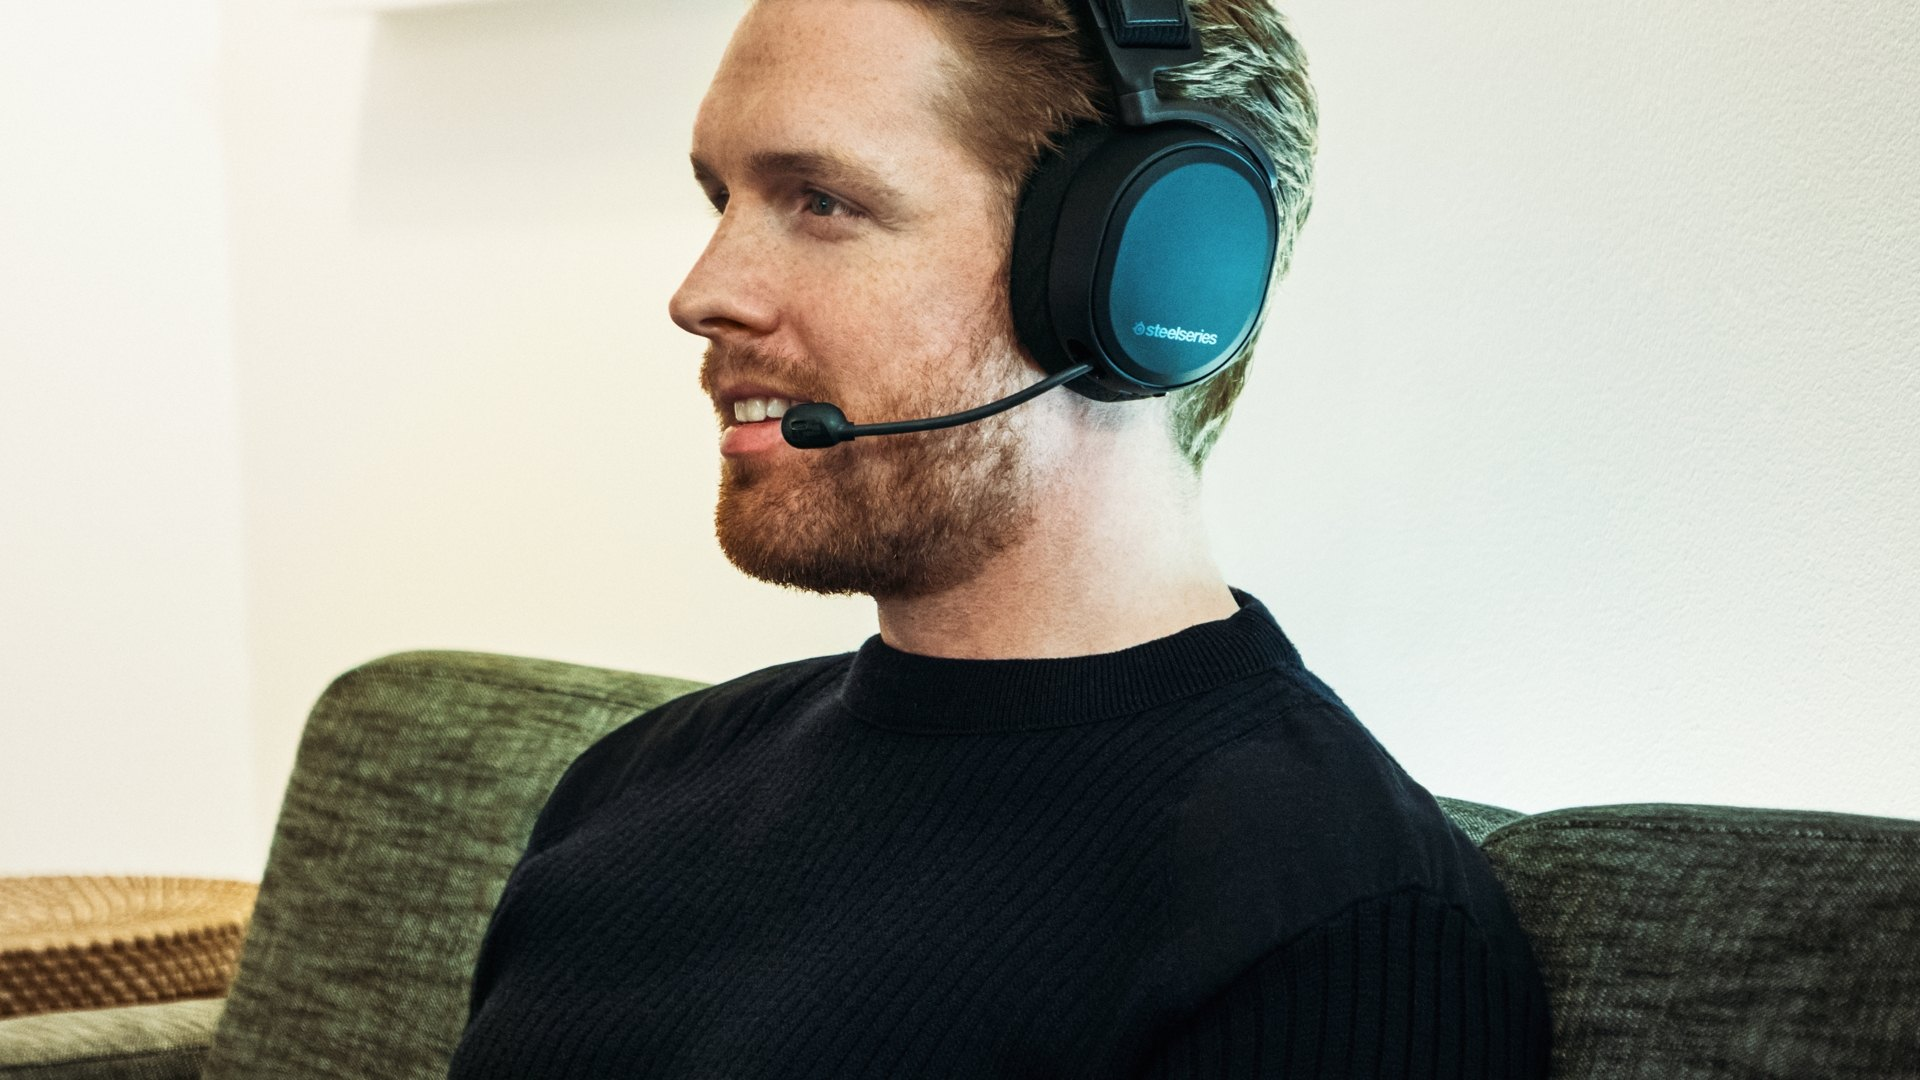 A man wearing the SteelSeries Arctis Pro headset looking to the left